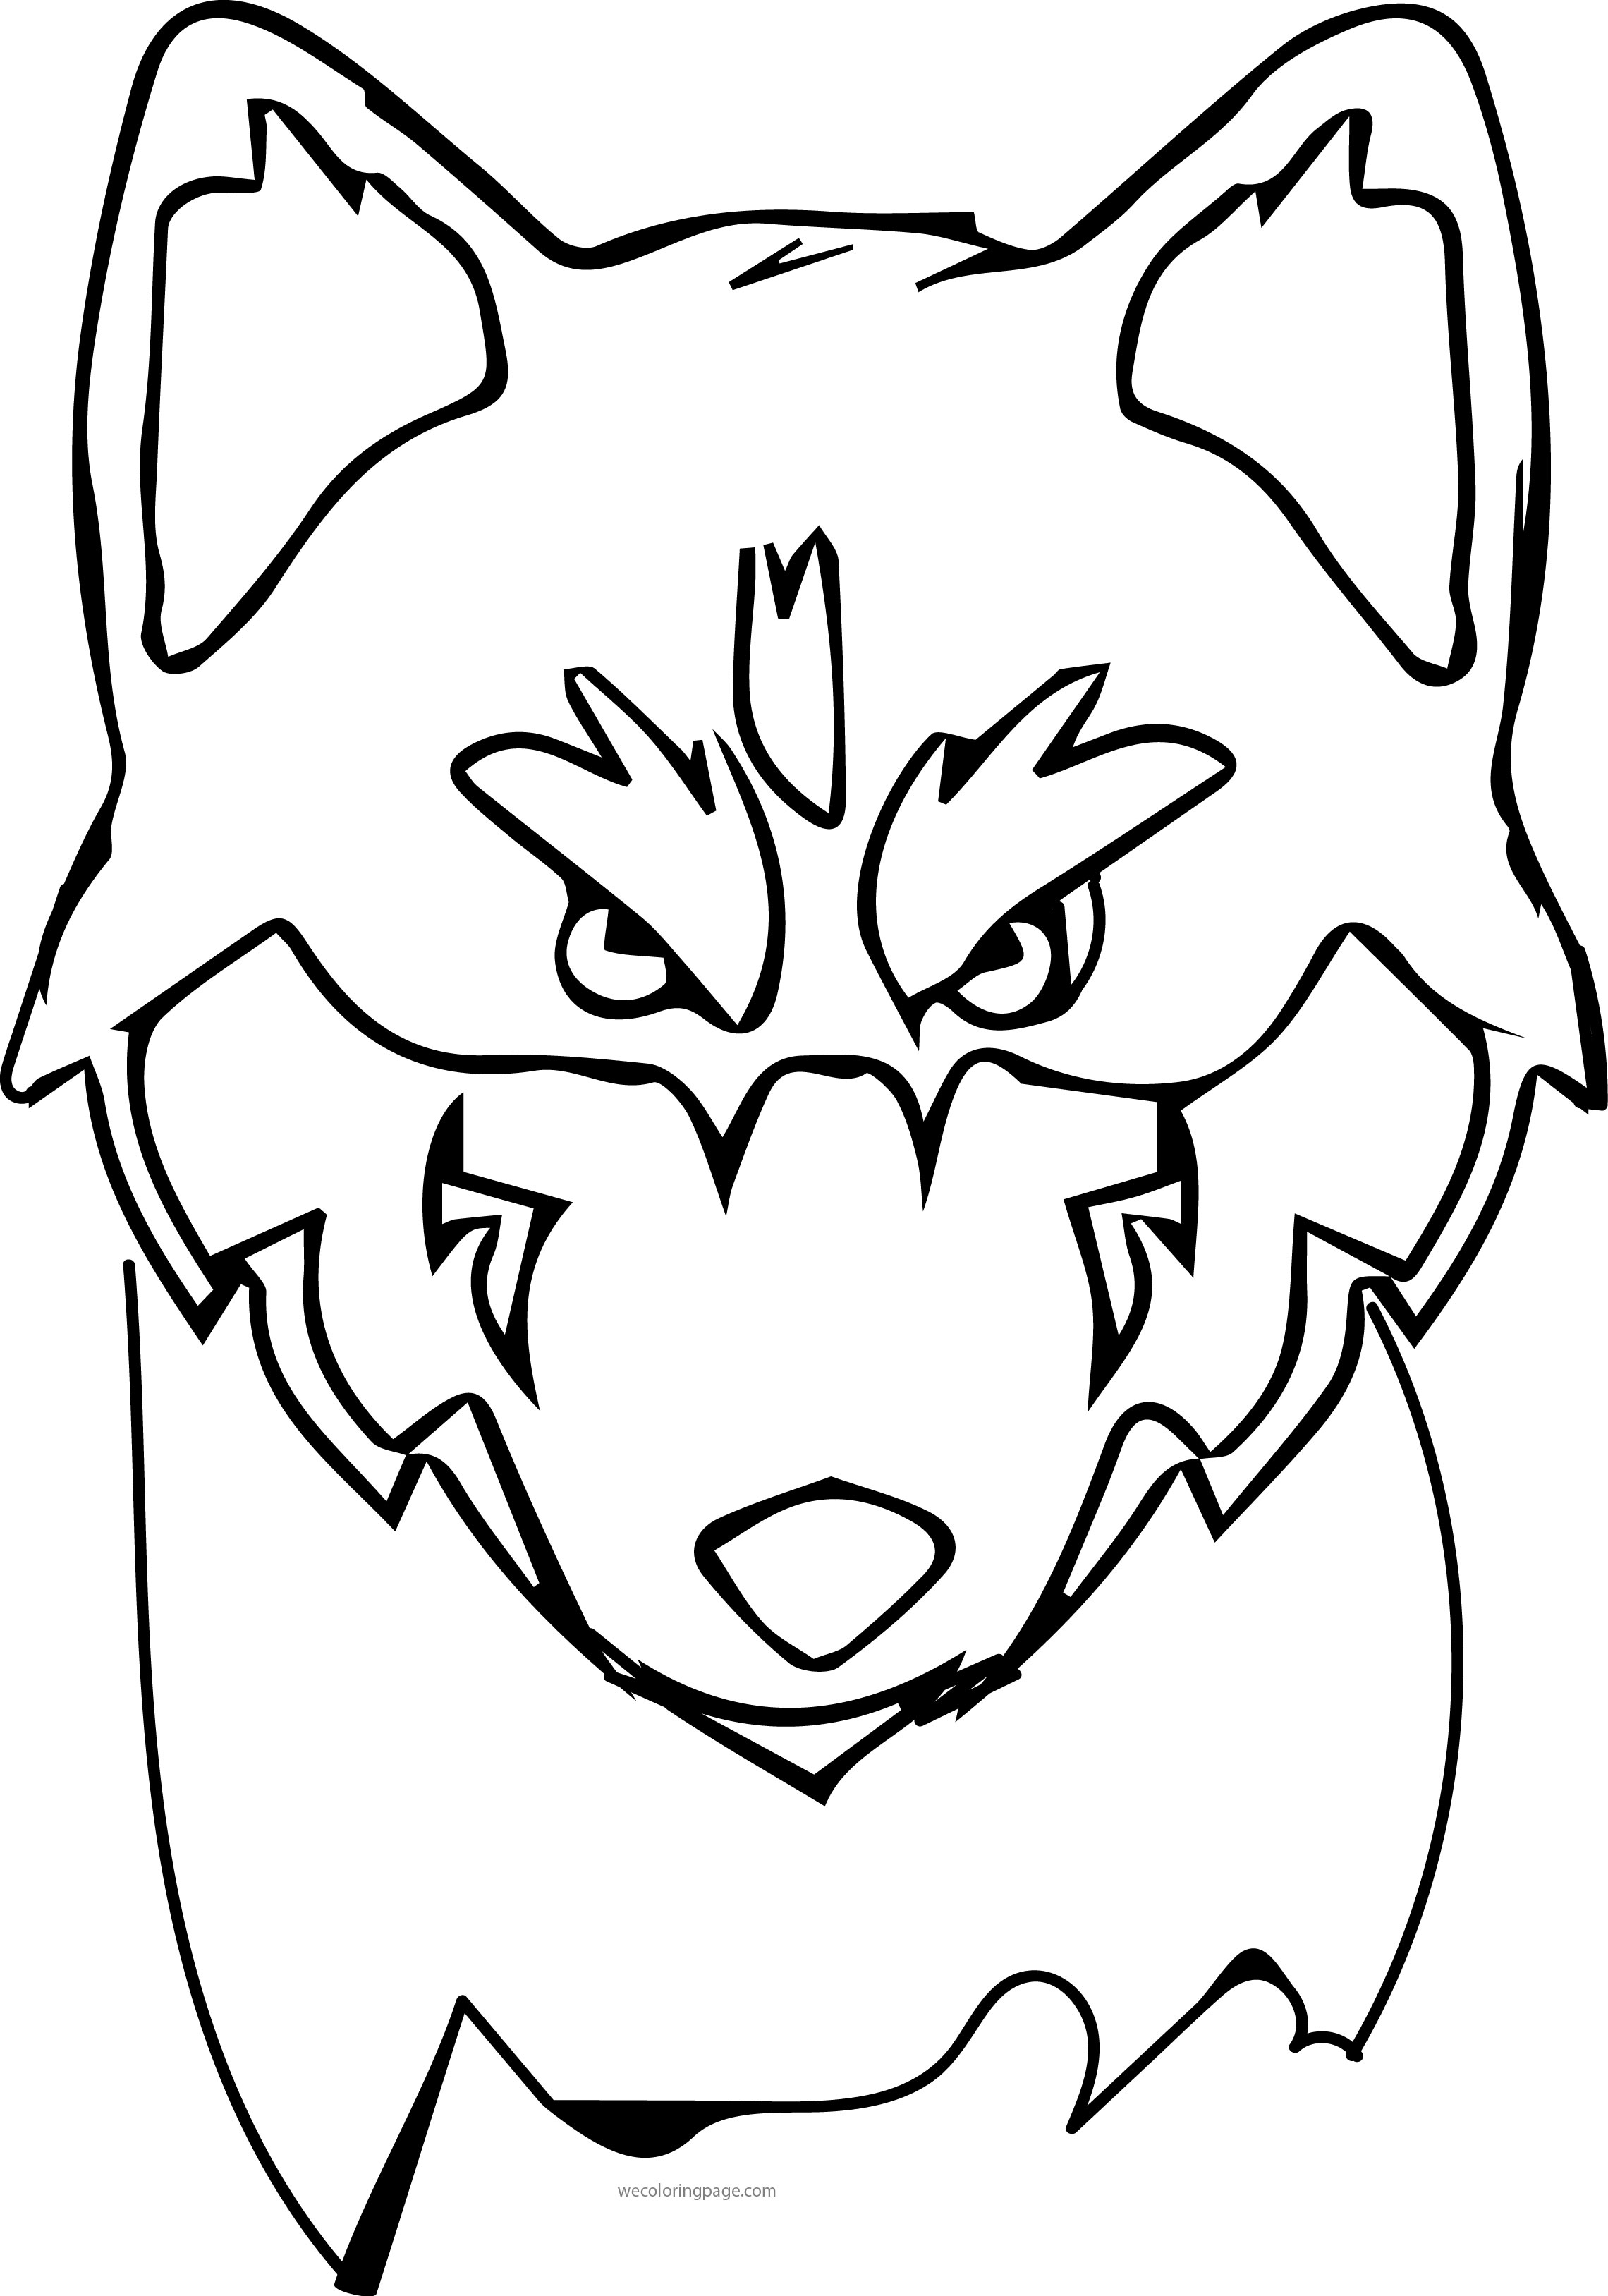 Husky 05 Coloring Page